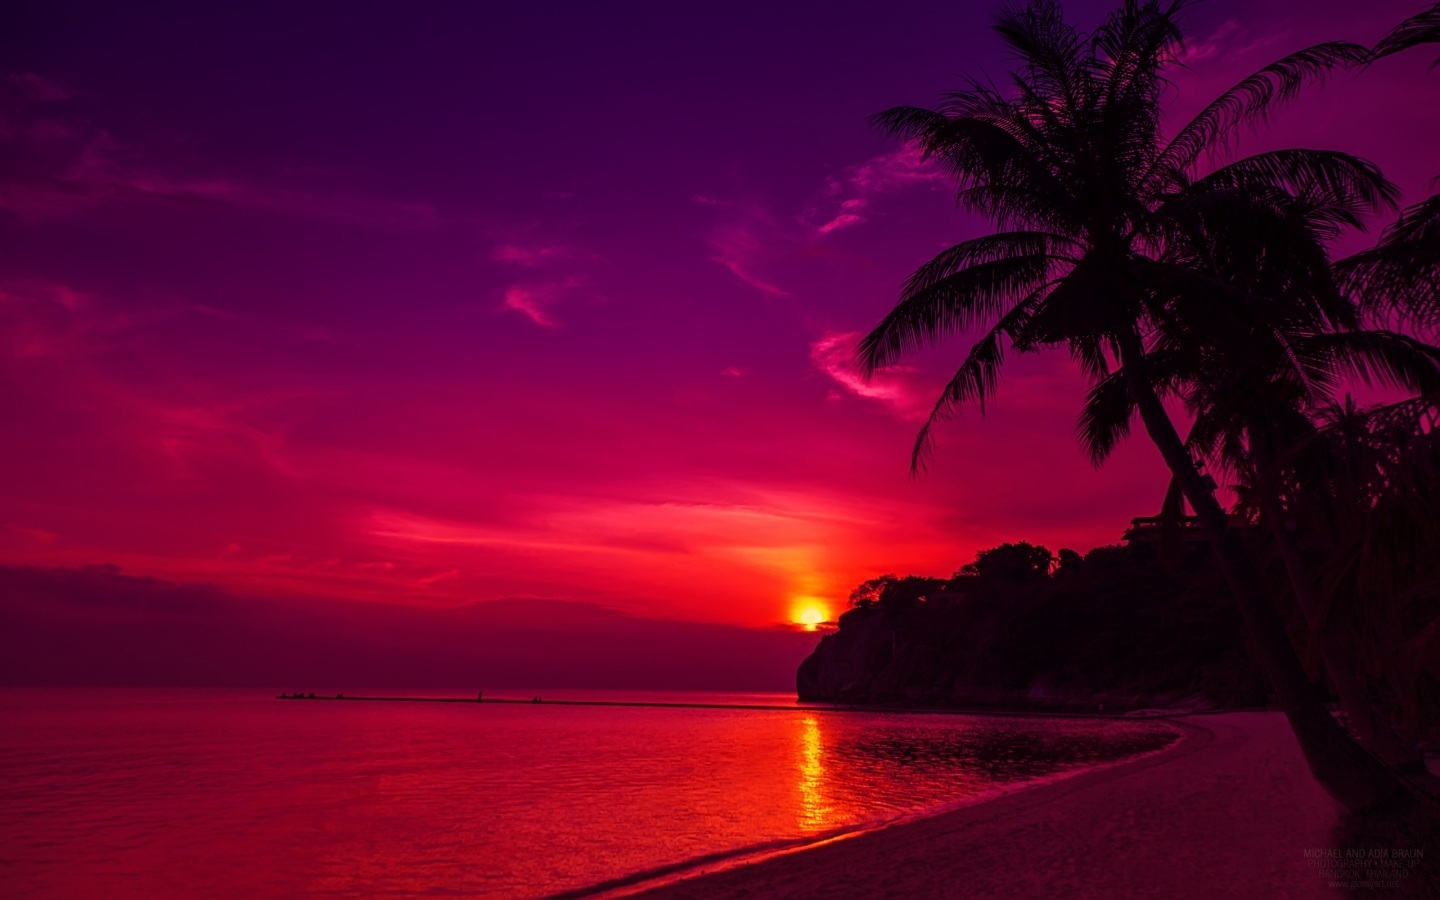 Purple Sunset wallpaper 1440x900 75576 1440x900